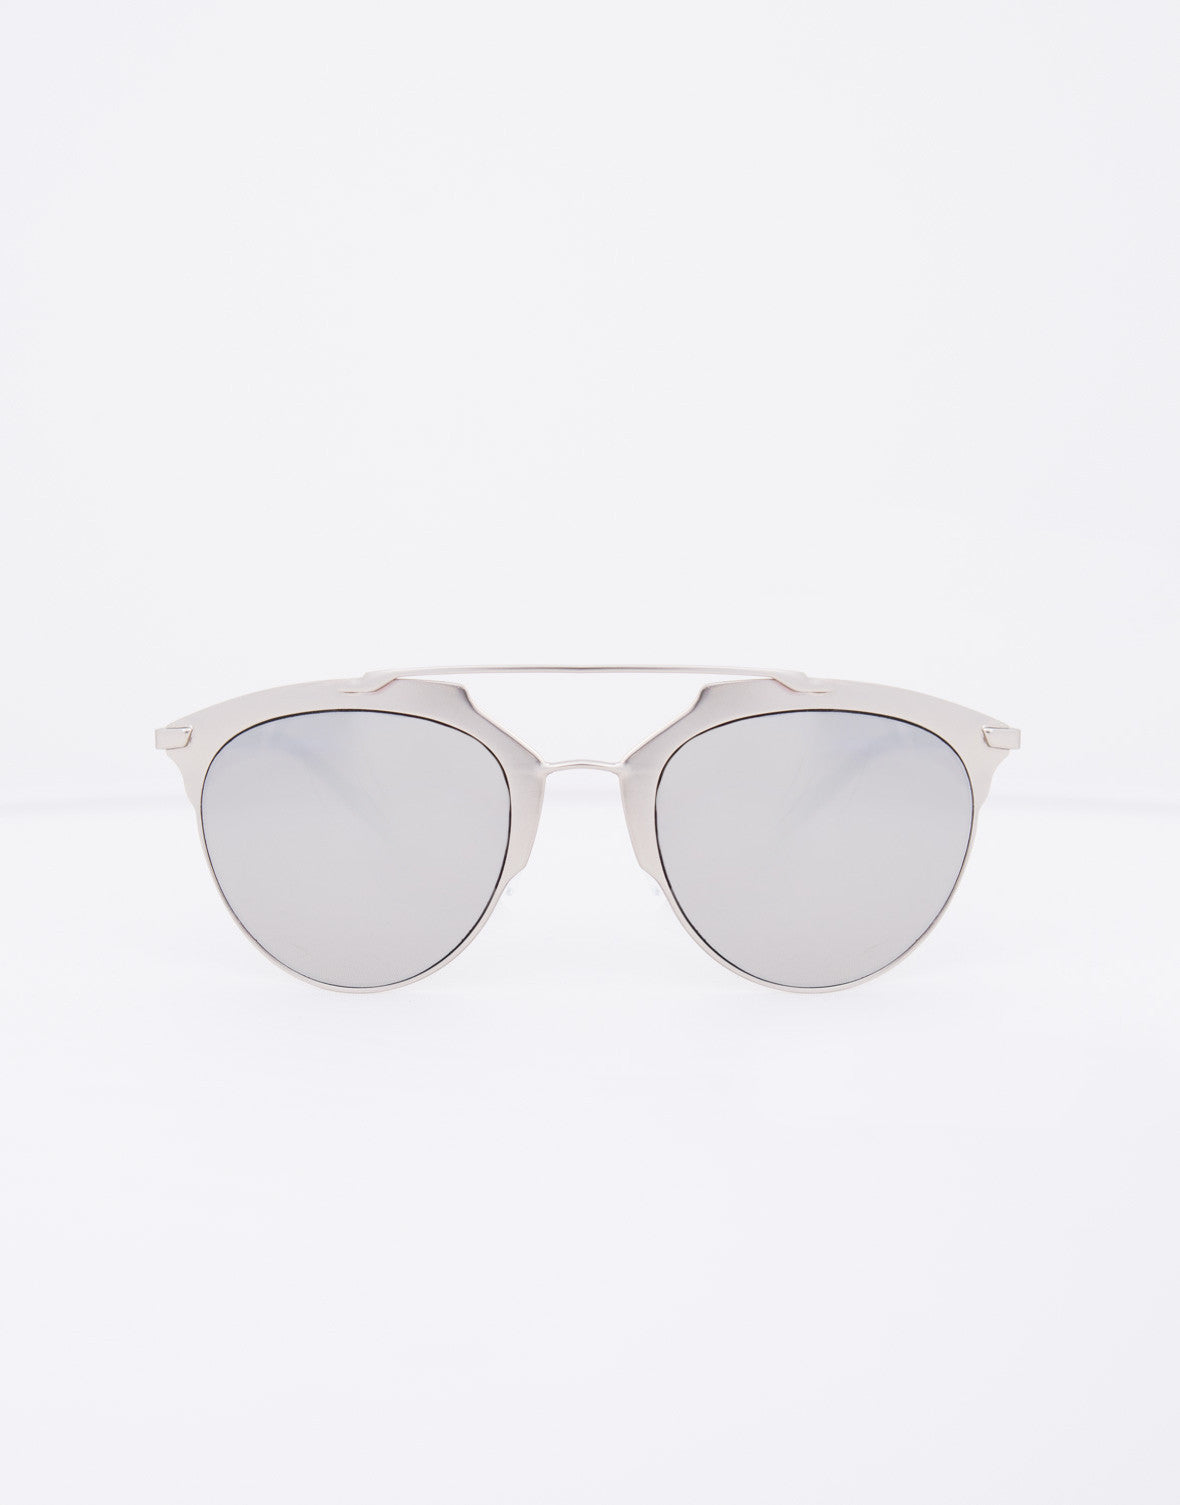 Oversized Mirrored Bar Sunglasses